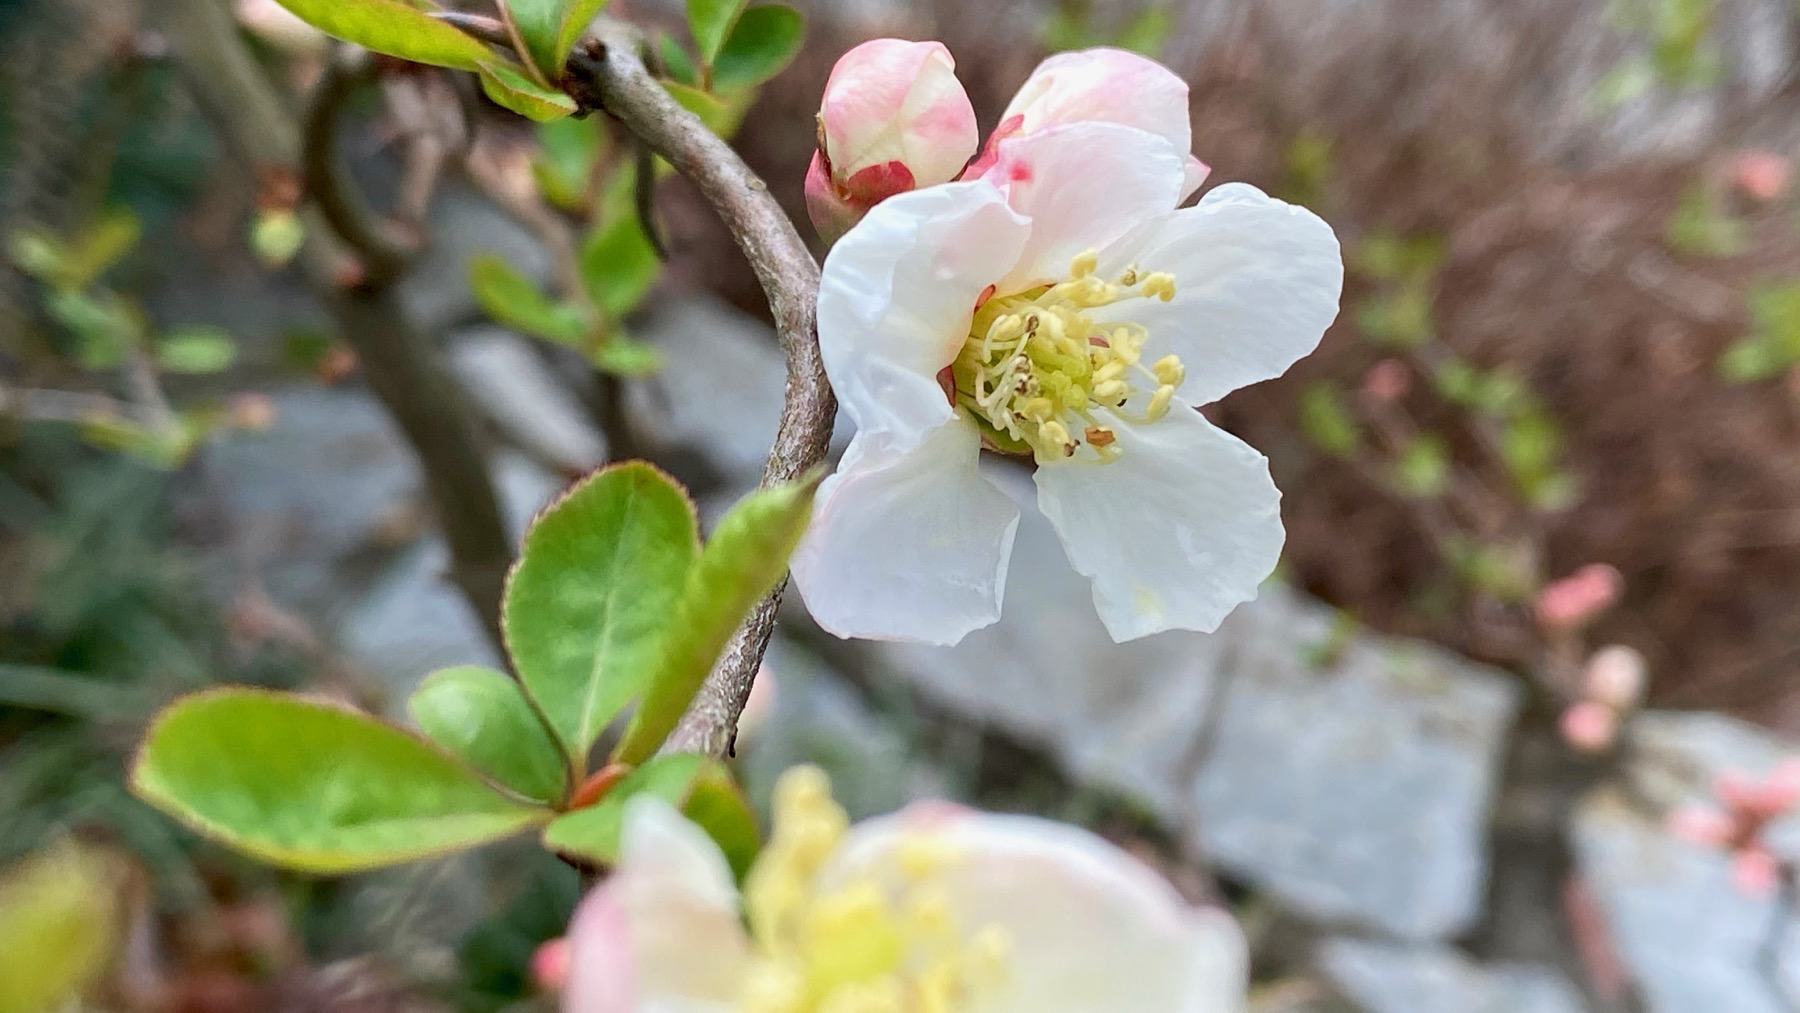 Our quince blooms again